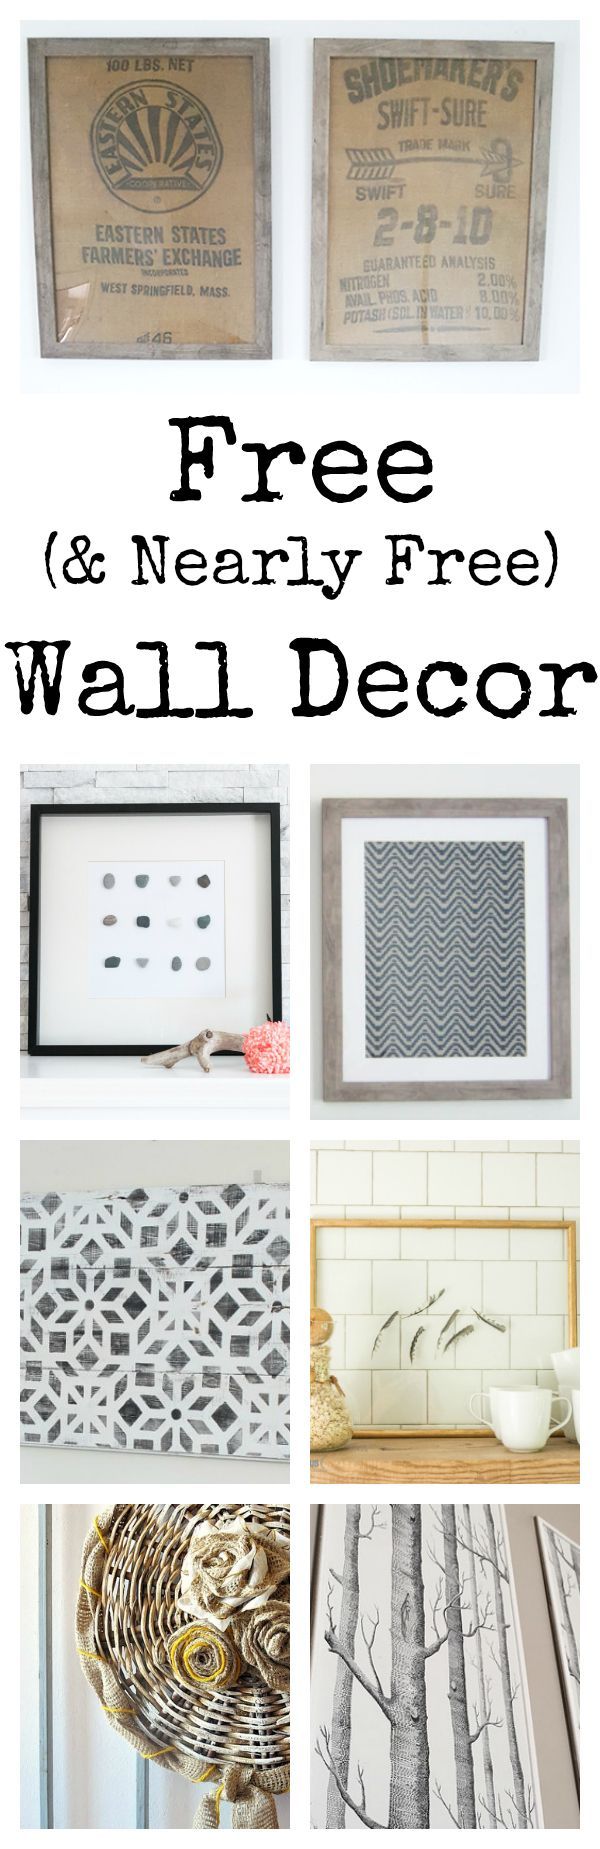 Free Wall Decor!!! These ideas are incredible!